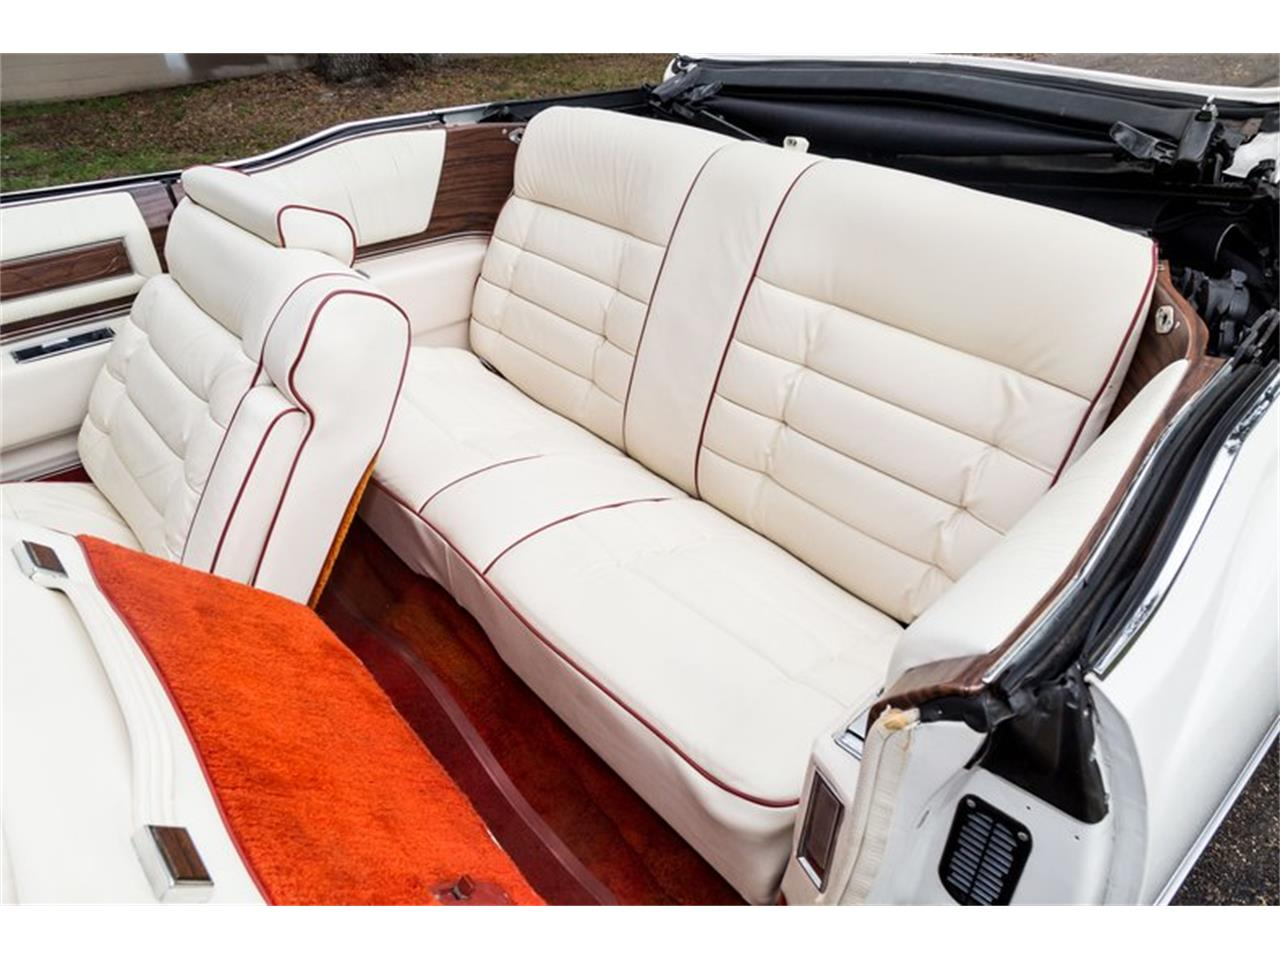 Large Picture of '76 Cadillac Eldorado located in Florida Offered by Orlando Classic Cars - N93X